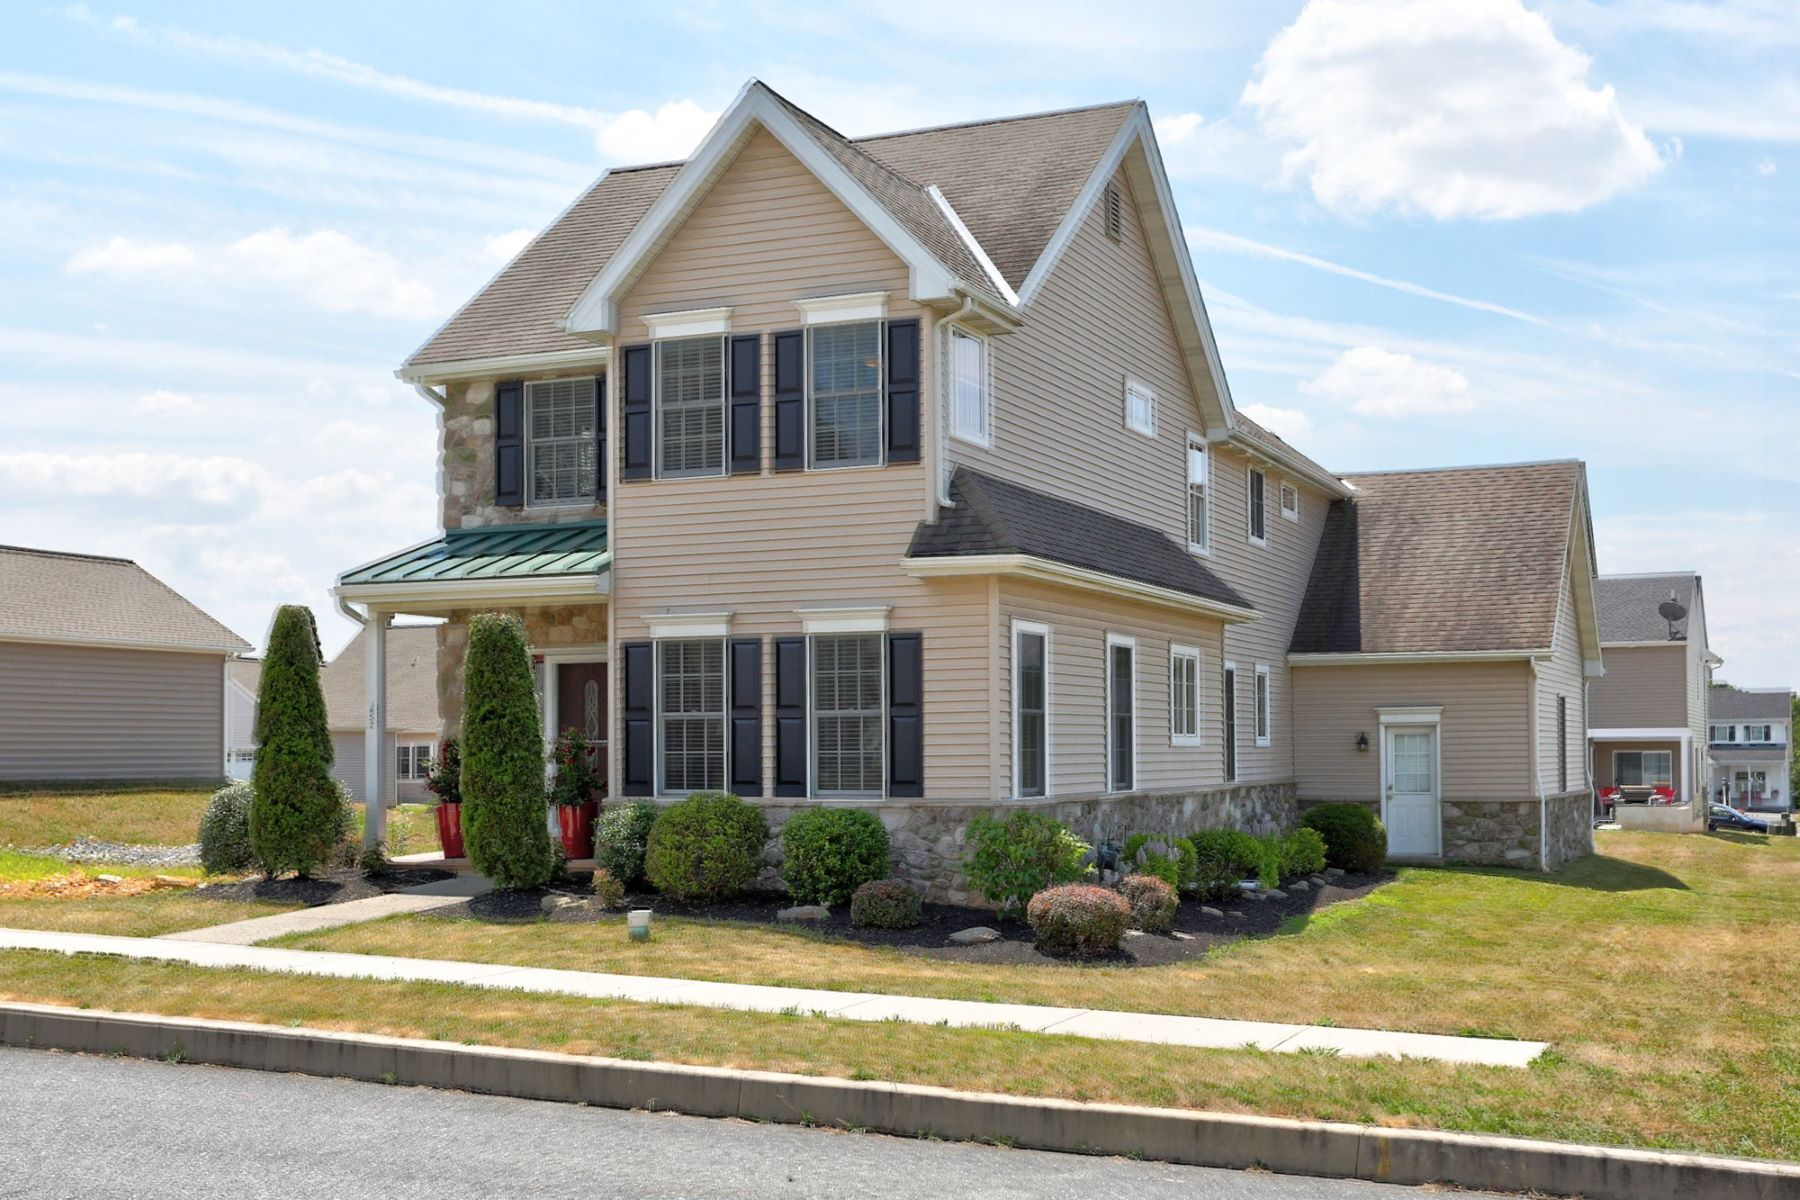 Single Family Home for Sale at 652 Richmond Drive 652 Richmond Drive Lancaster, Pennsylvania 17601 United States